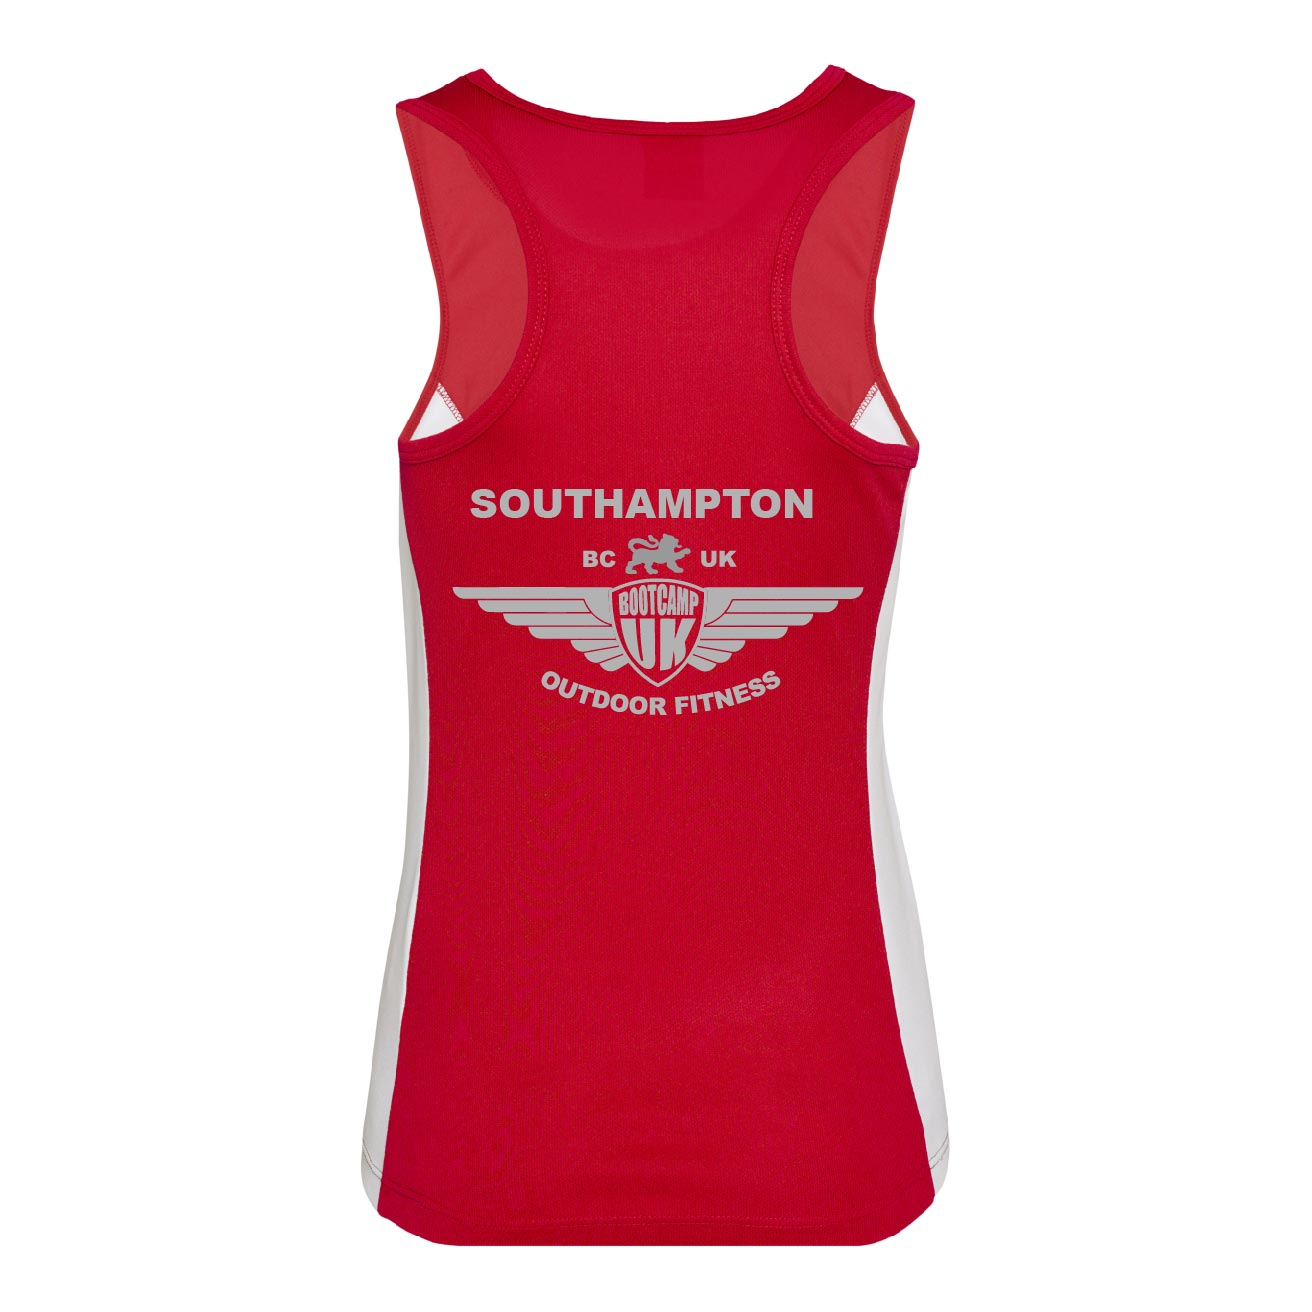 Southampton Ladies Vest